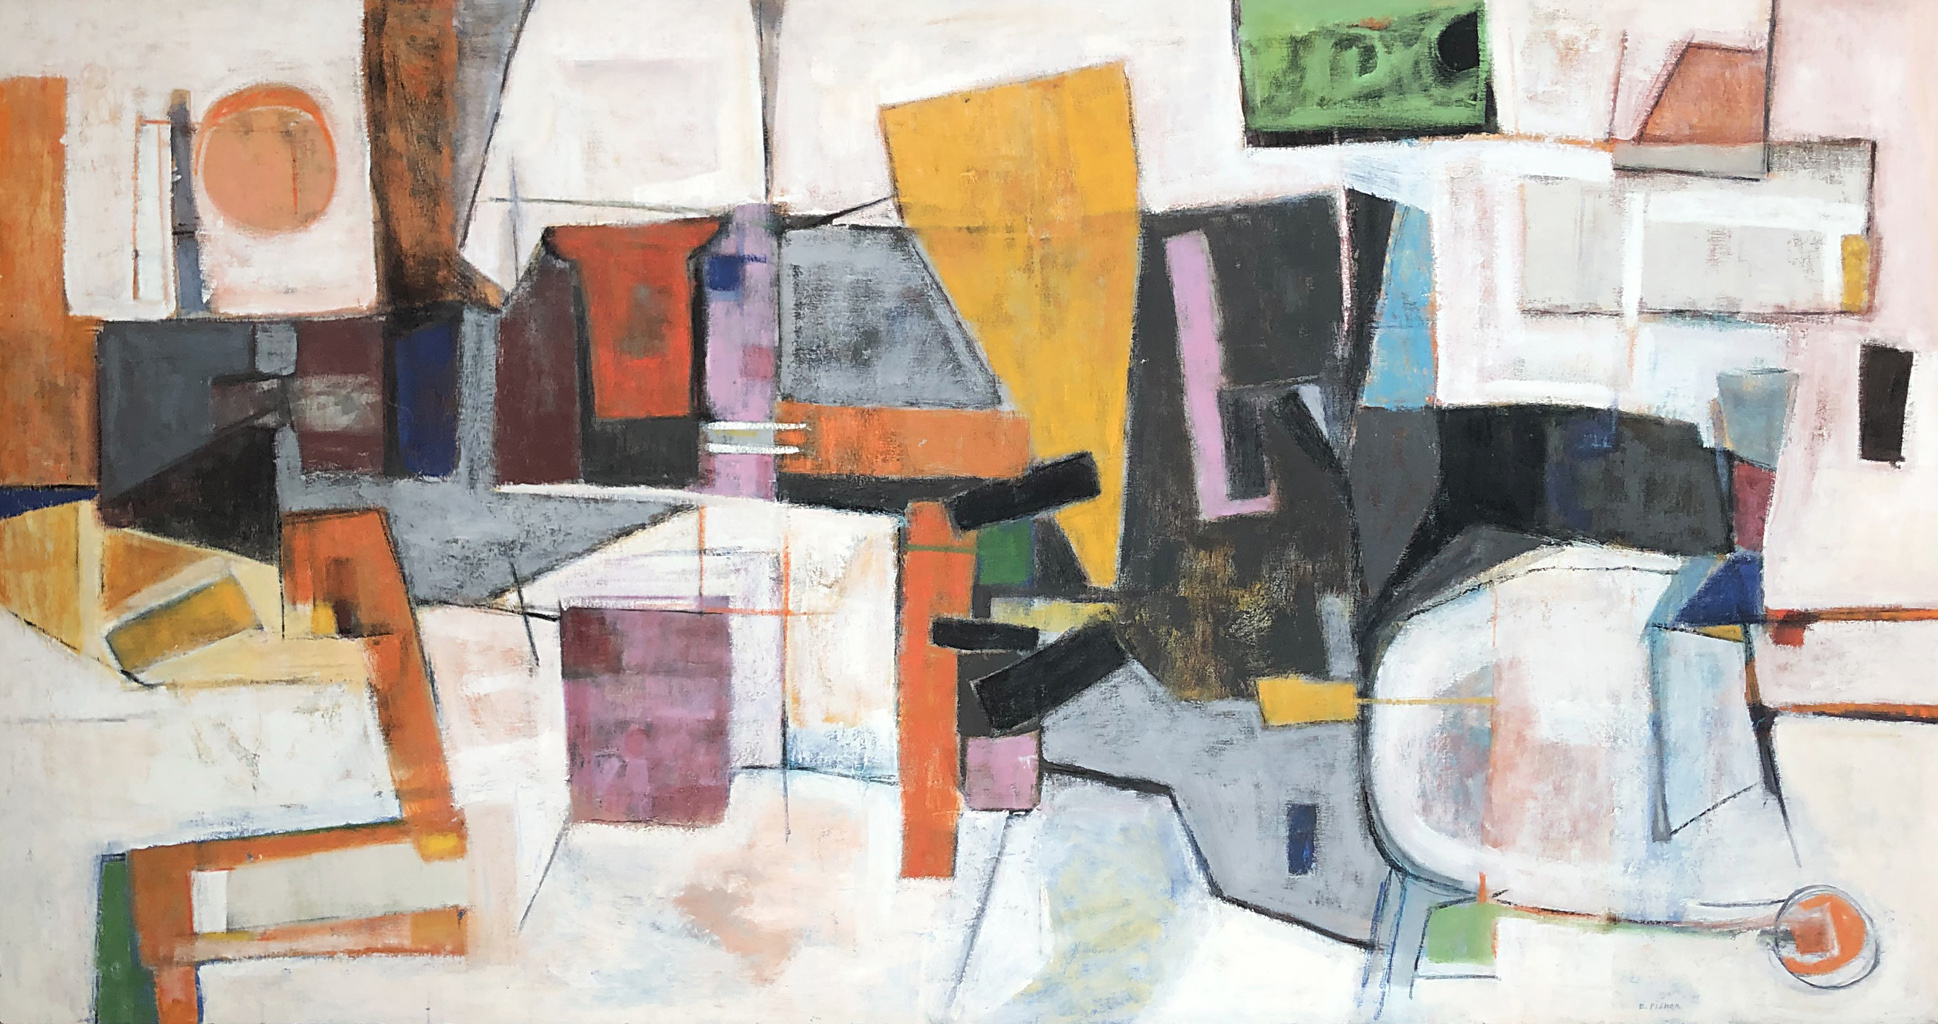 The City: Abstract Painting by Ethel Fisher, 1957, oil on canvas, 30 x 68 inches, mid-twentieth century abstract painting, widely exhibited in Havana, Cuba.